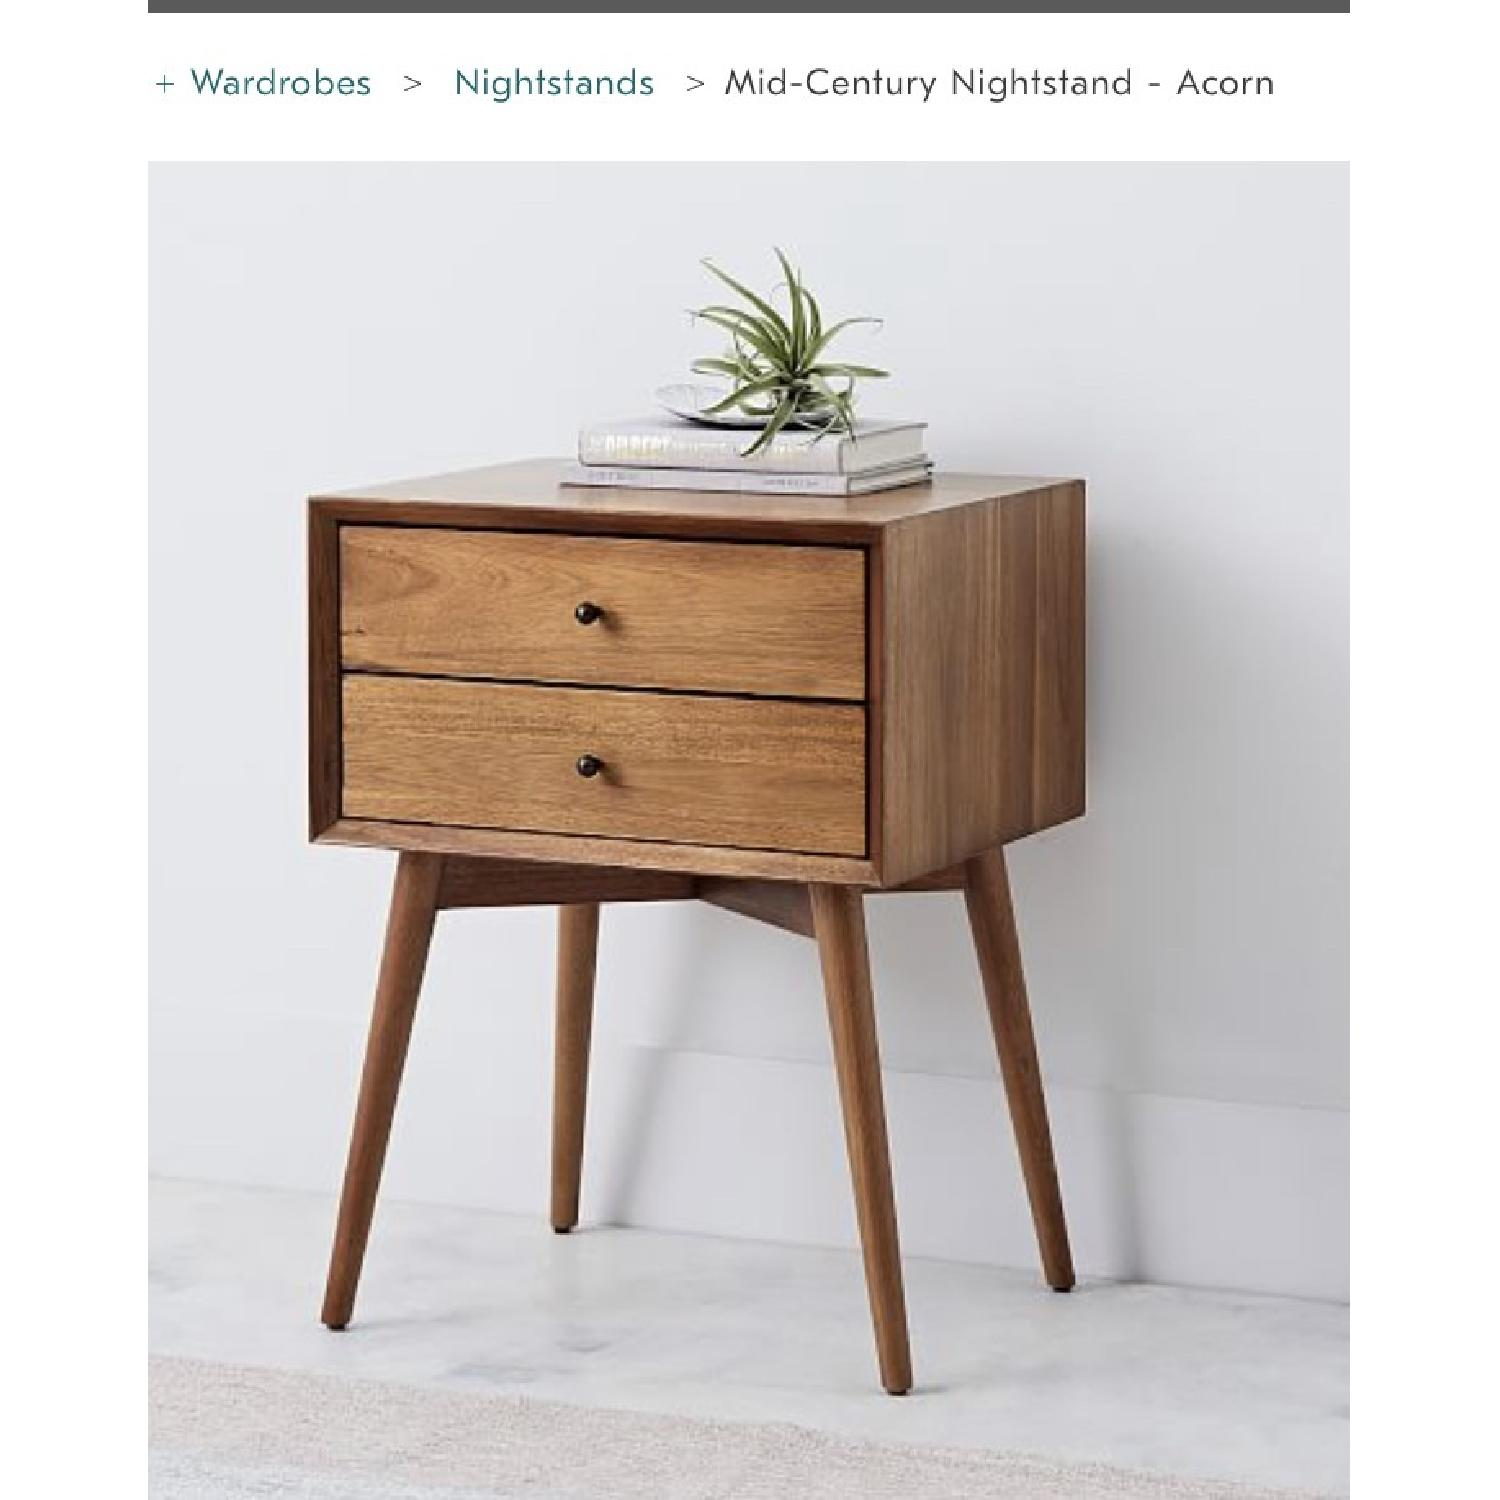 West Elm Mid Century Nightstand in Acorn-0